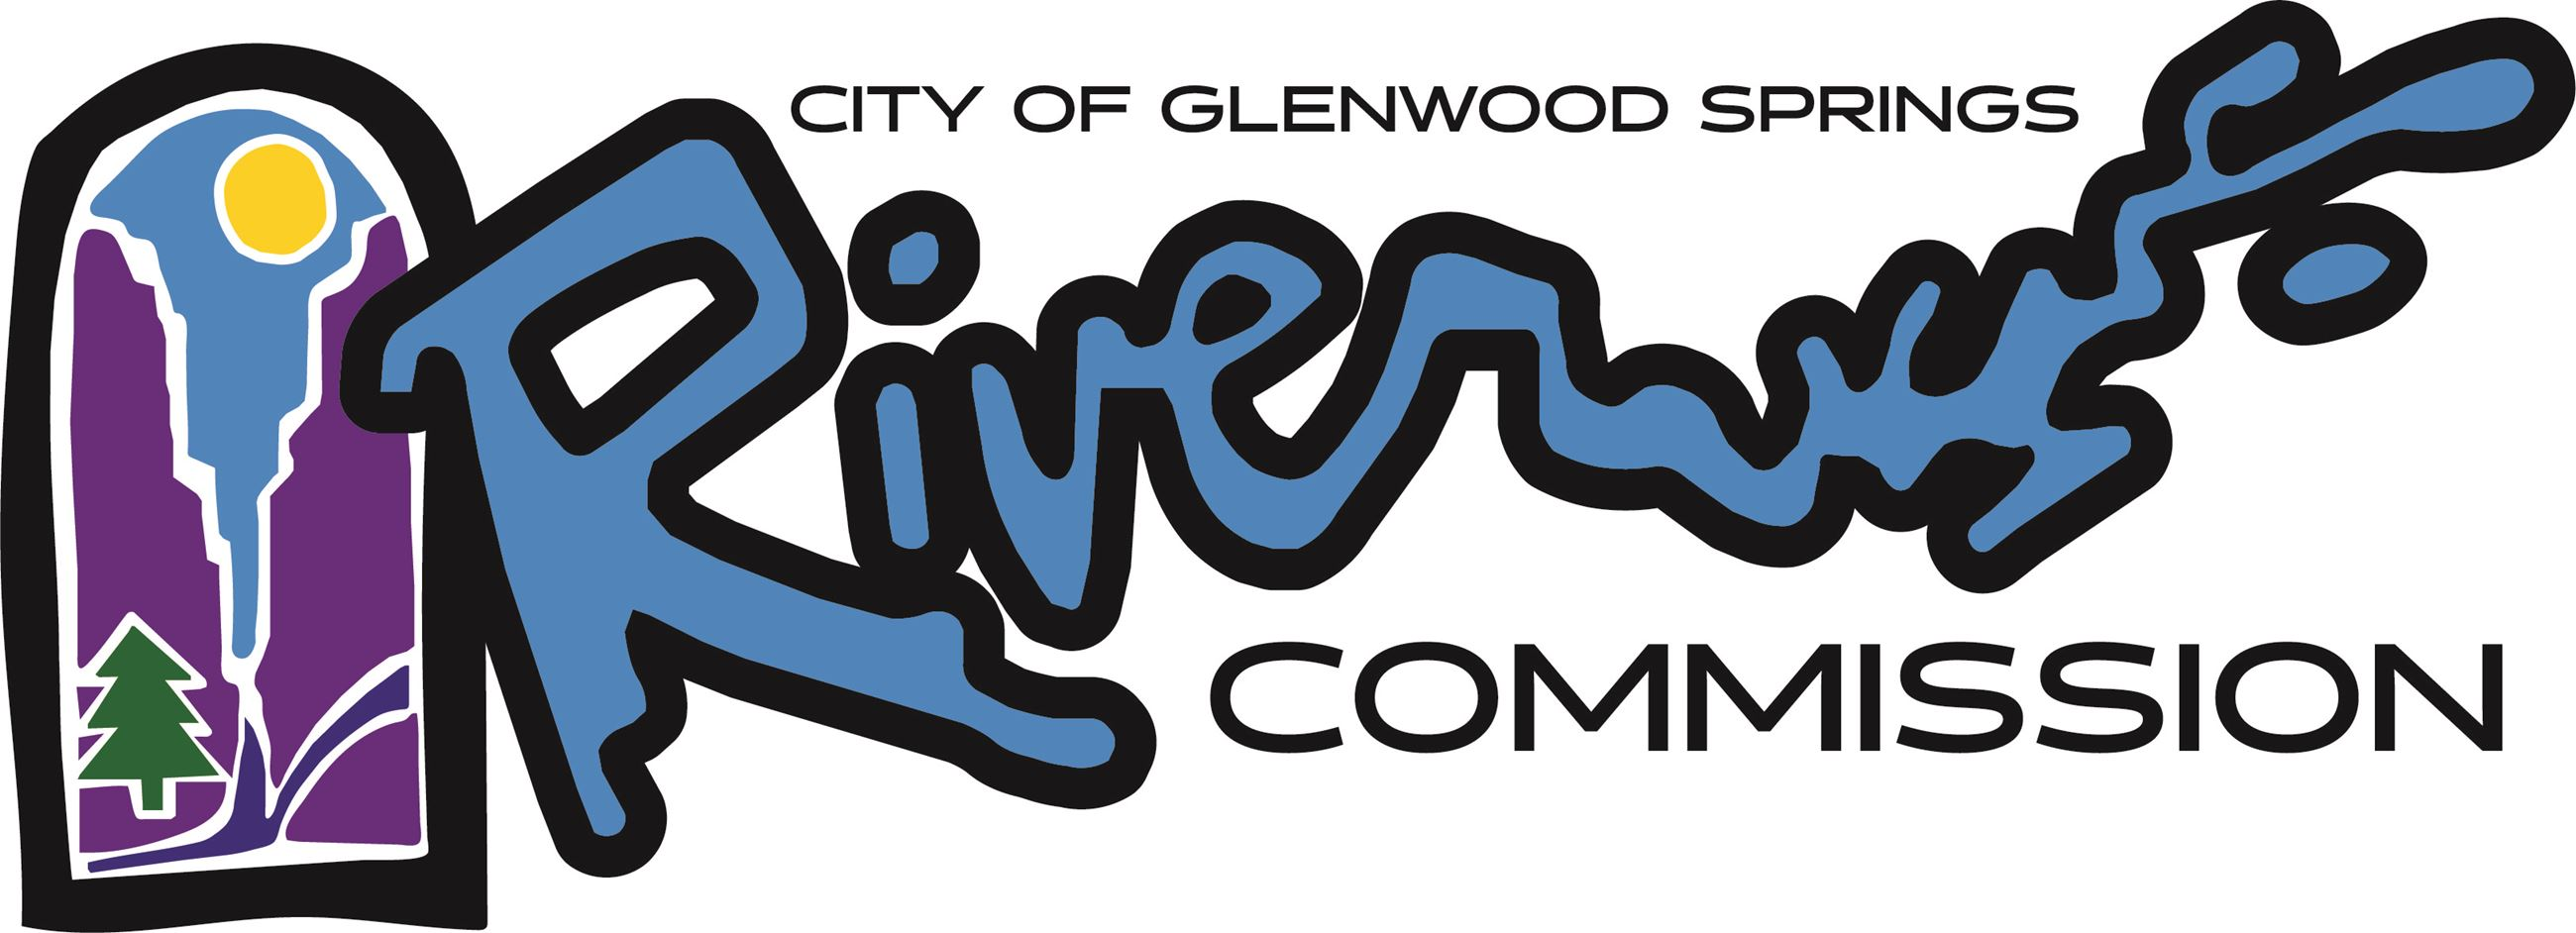 City of Glenwood Spring River Commission logo final horizontal May 2018